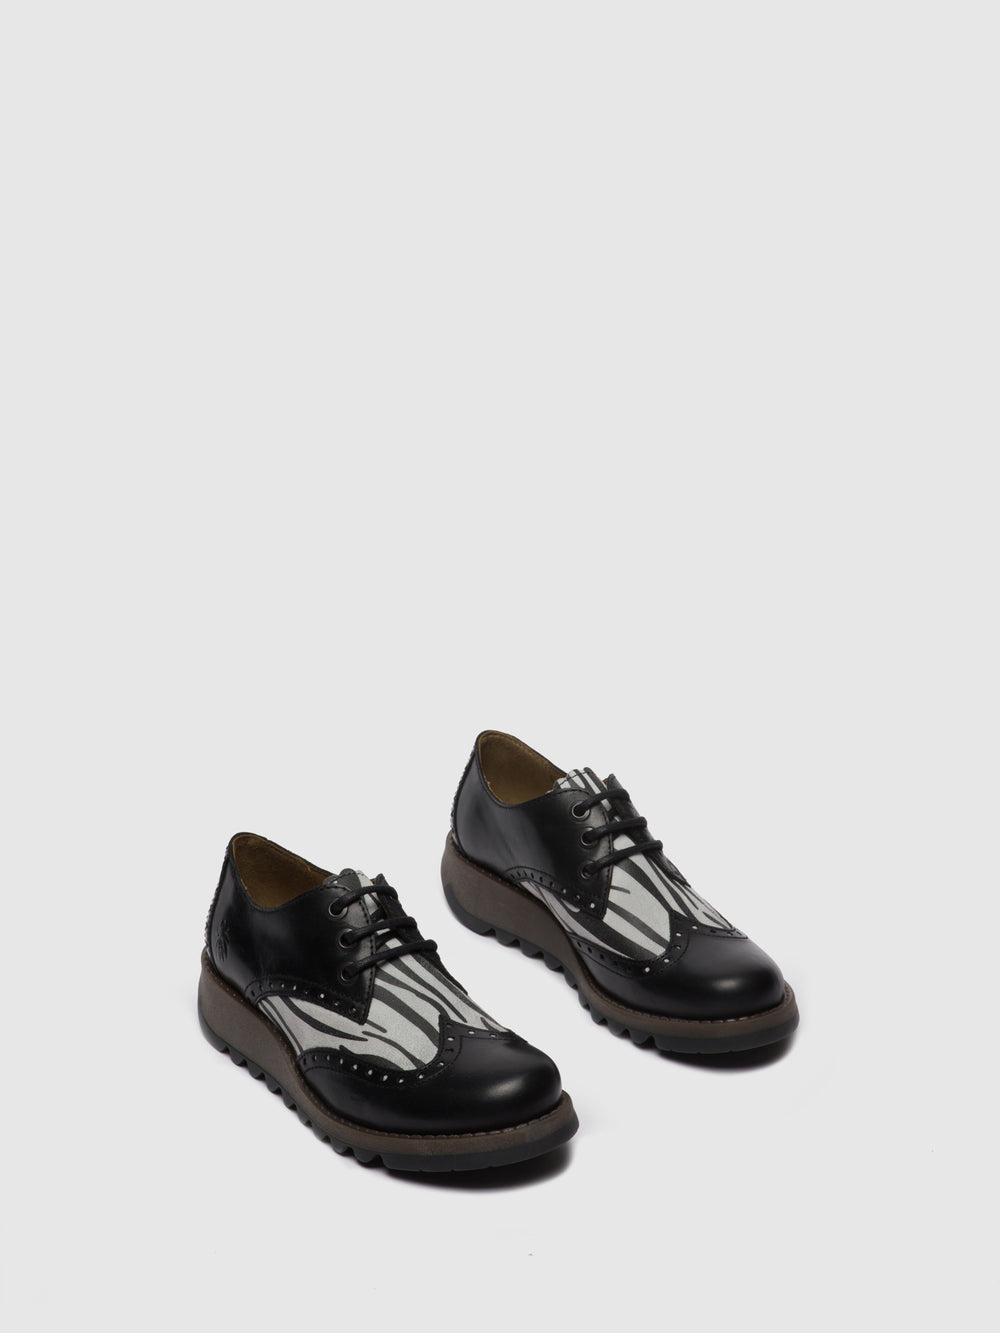 Oxford Shoes SUME524FLY RUG/ZEBRA BLACK/OFFWHITE